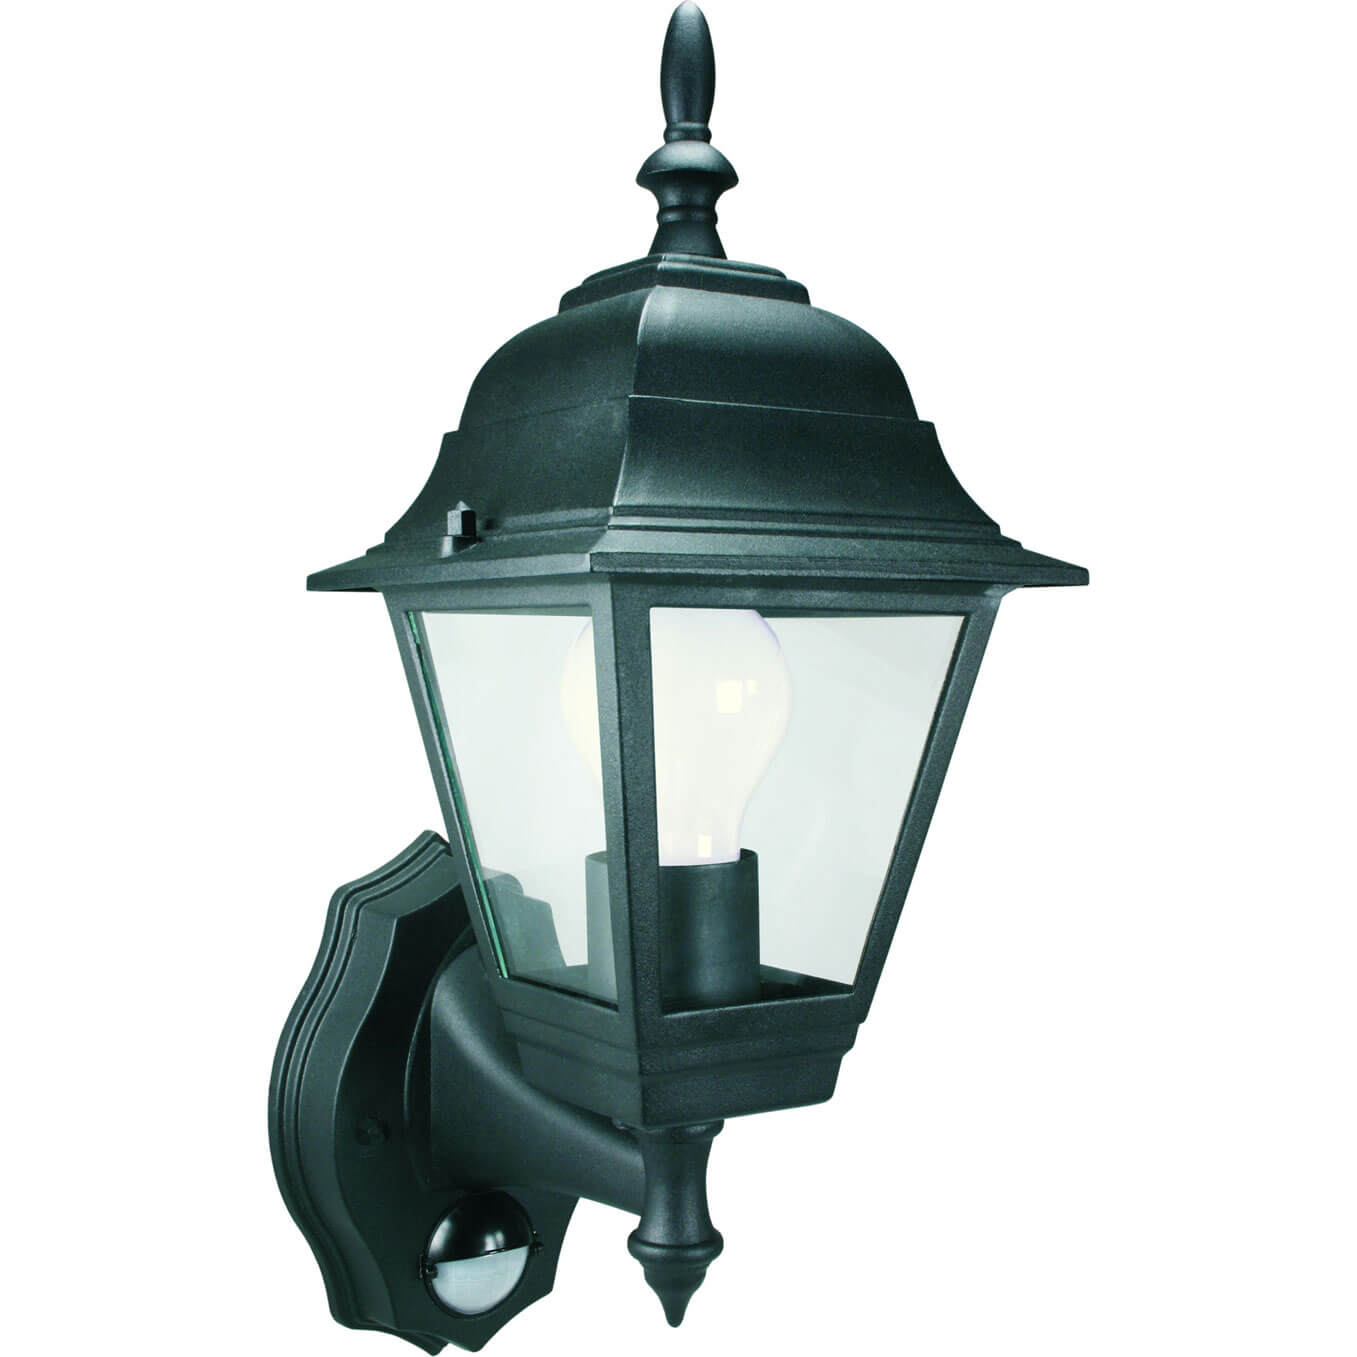 Byron ES94 4 Panel Coach Lantern with Motion Detector Black 24v